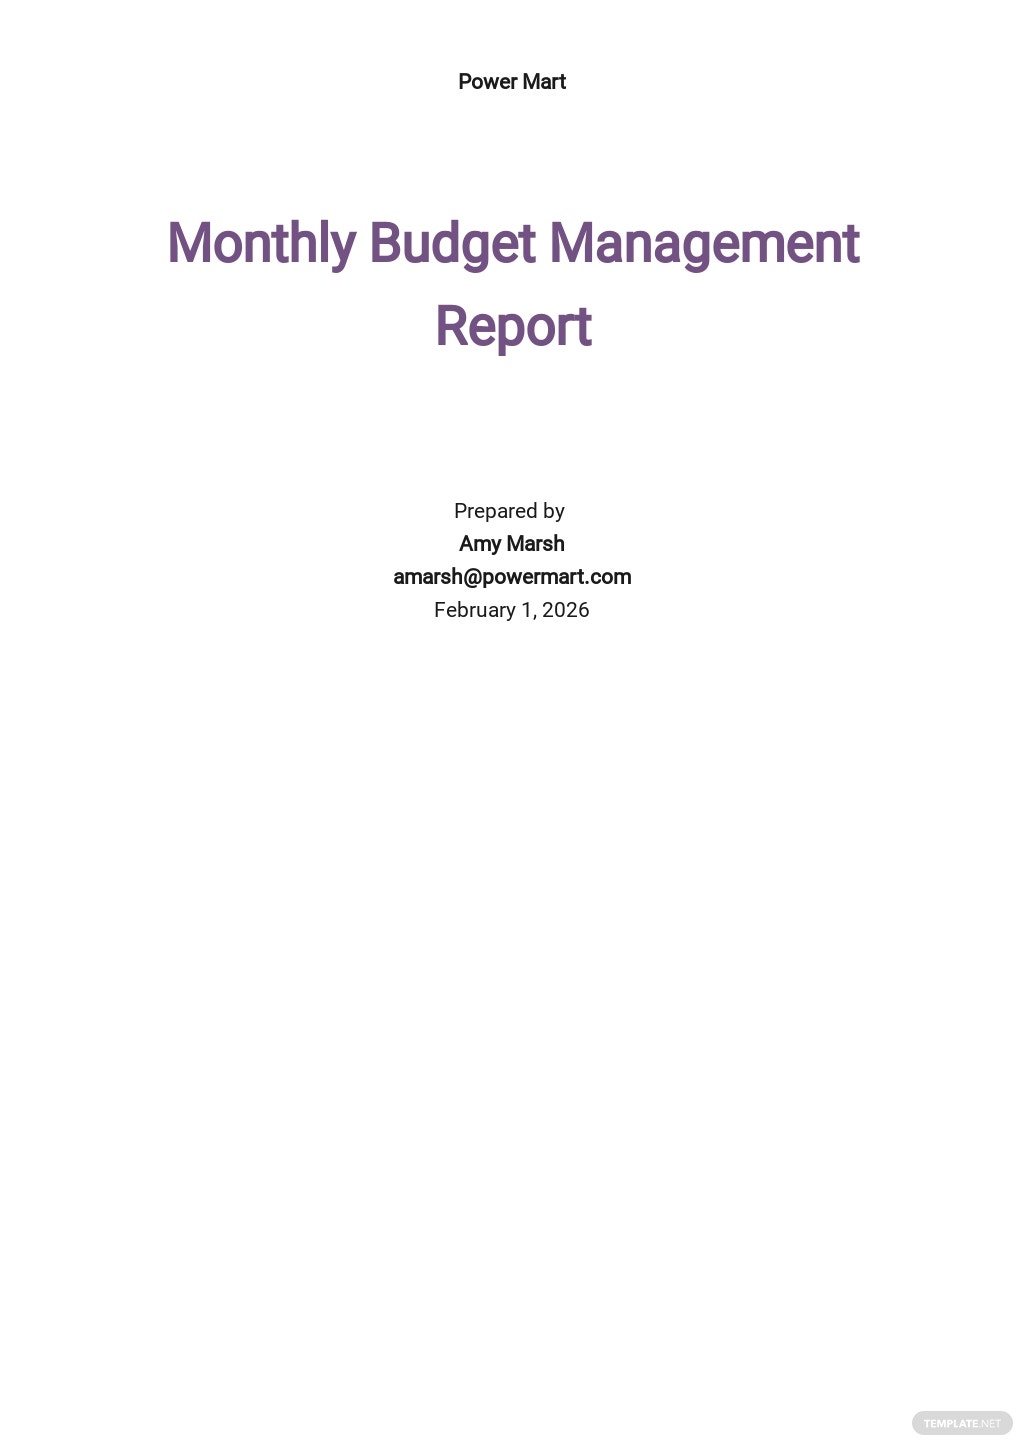 Monthly Budget Management Report Template